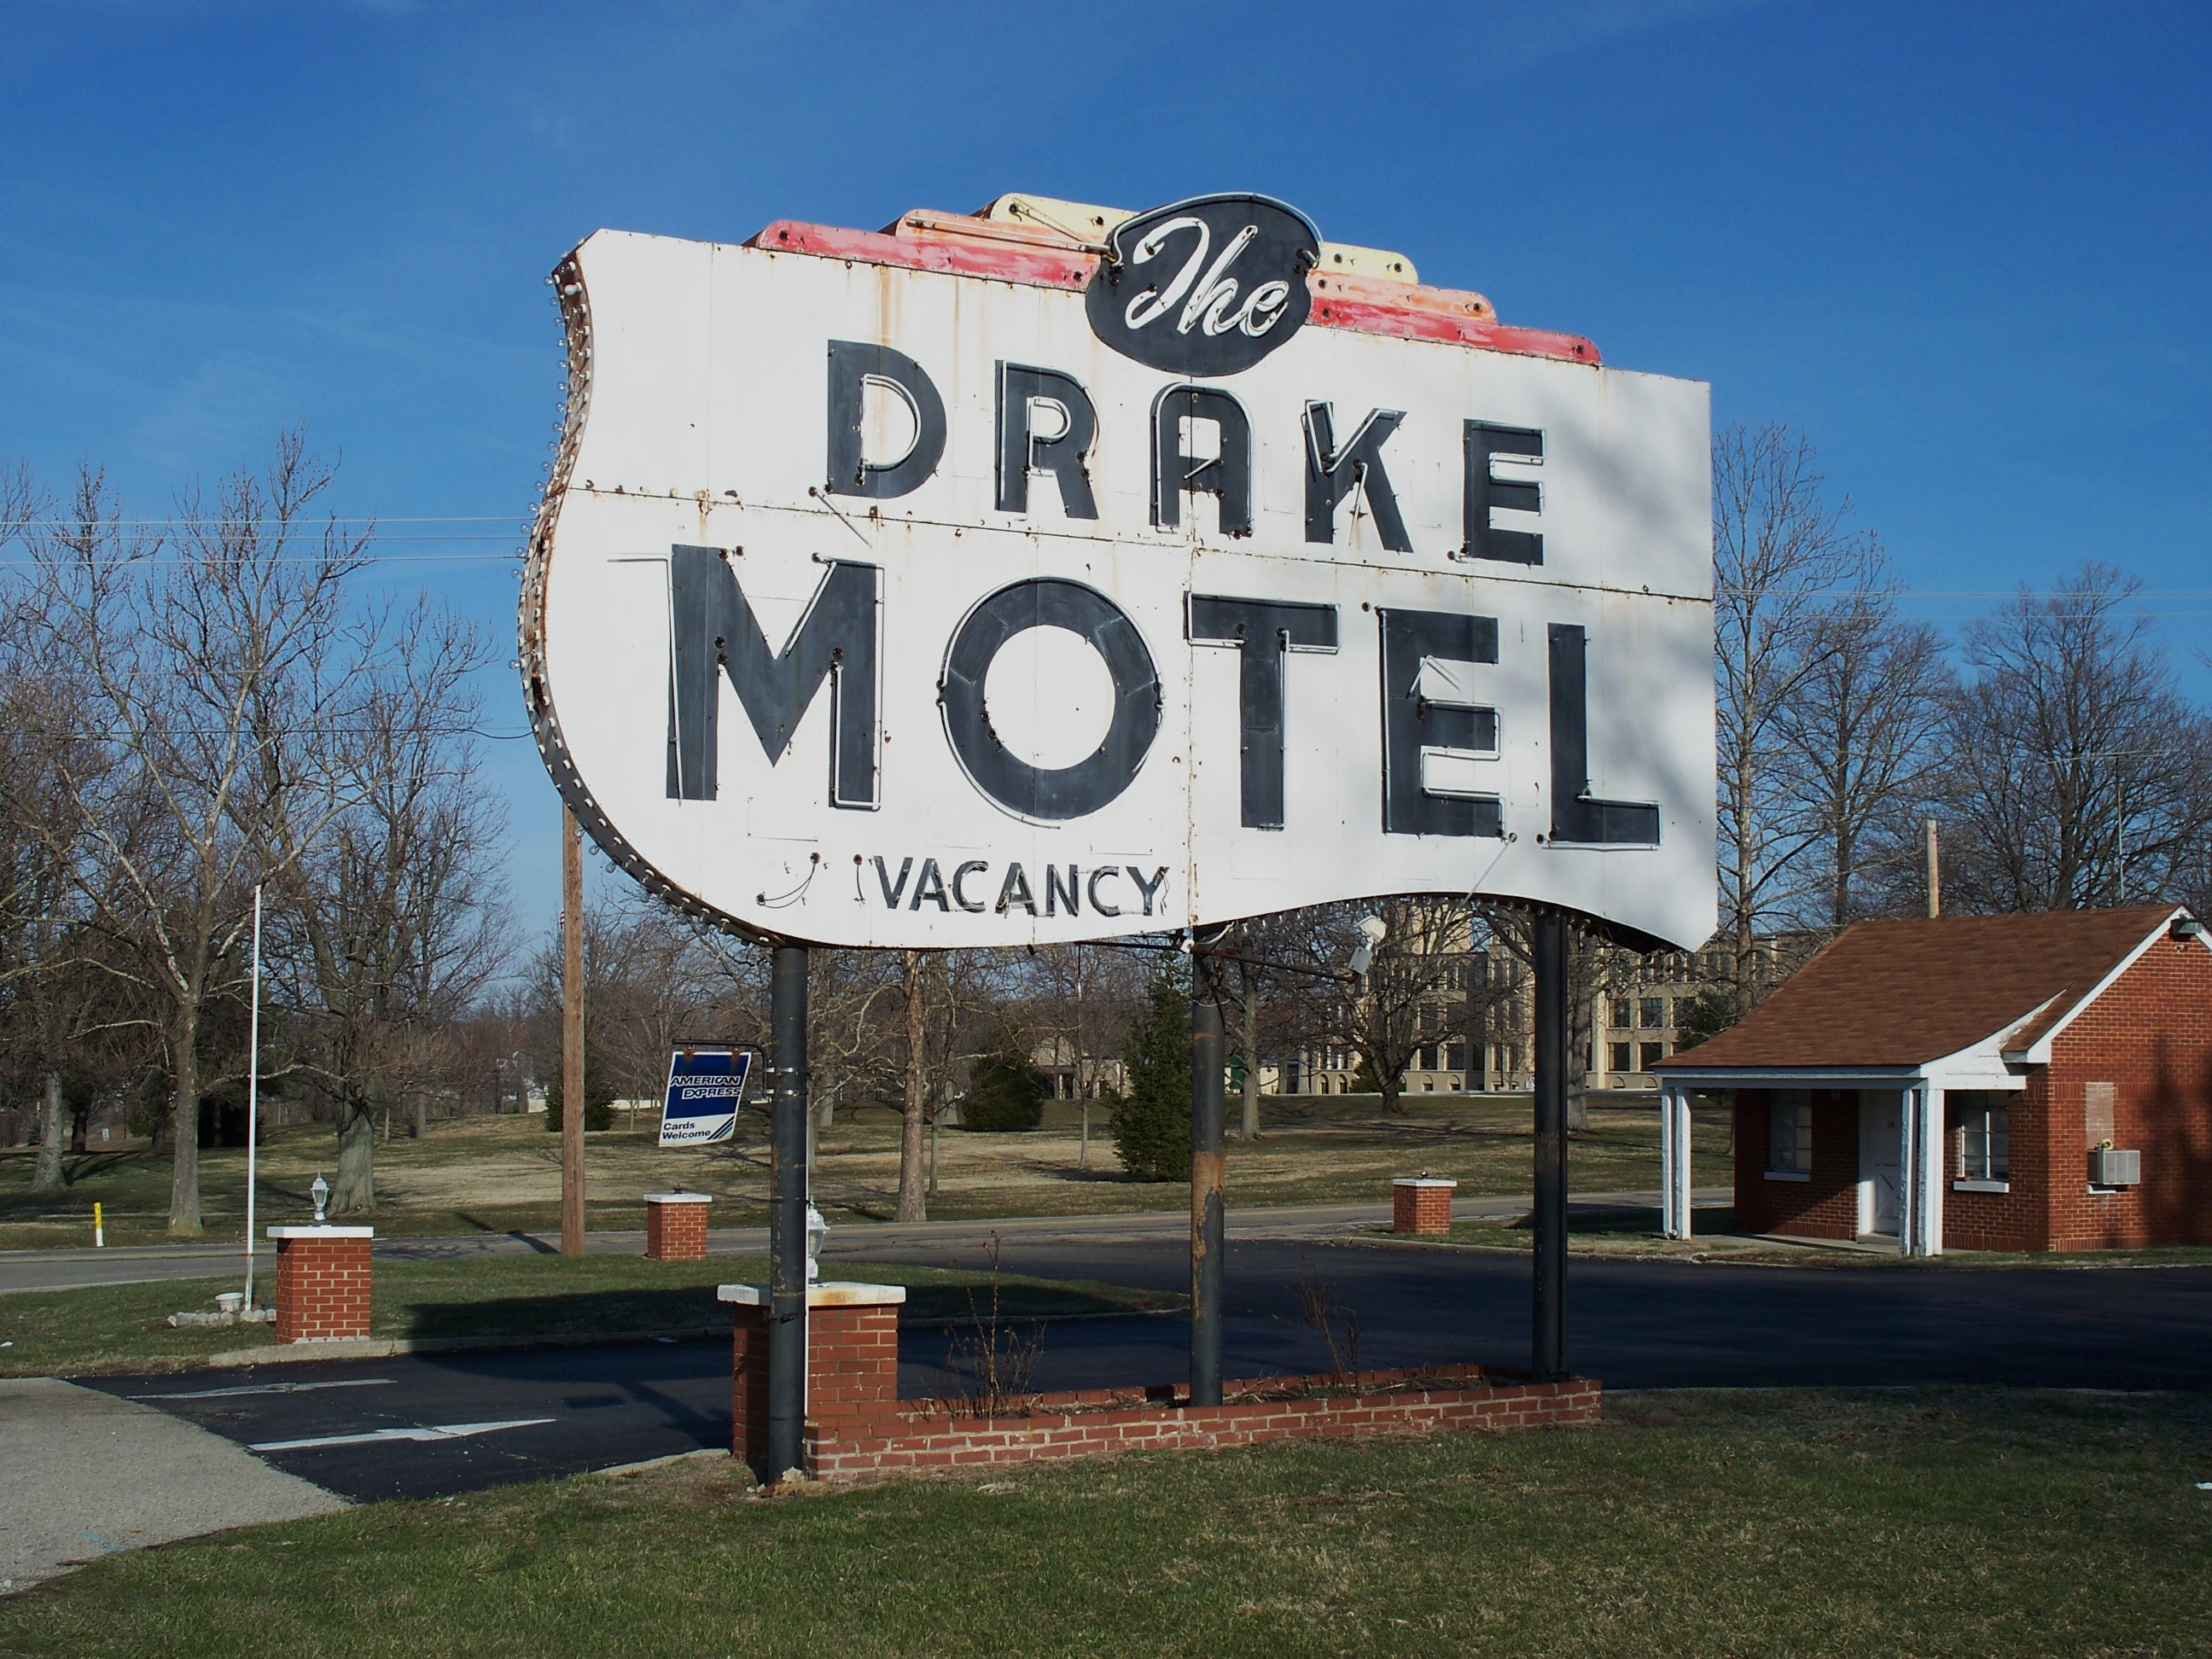 The Drake Motel - 3200 East National Road, Springfield, Ohio U.S.A. - March 29, 2008